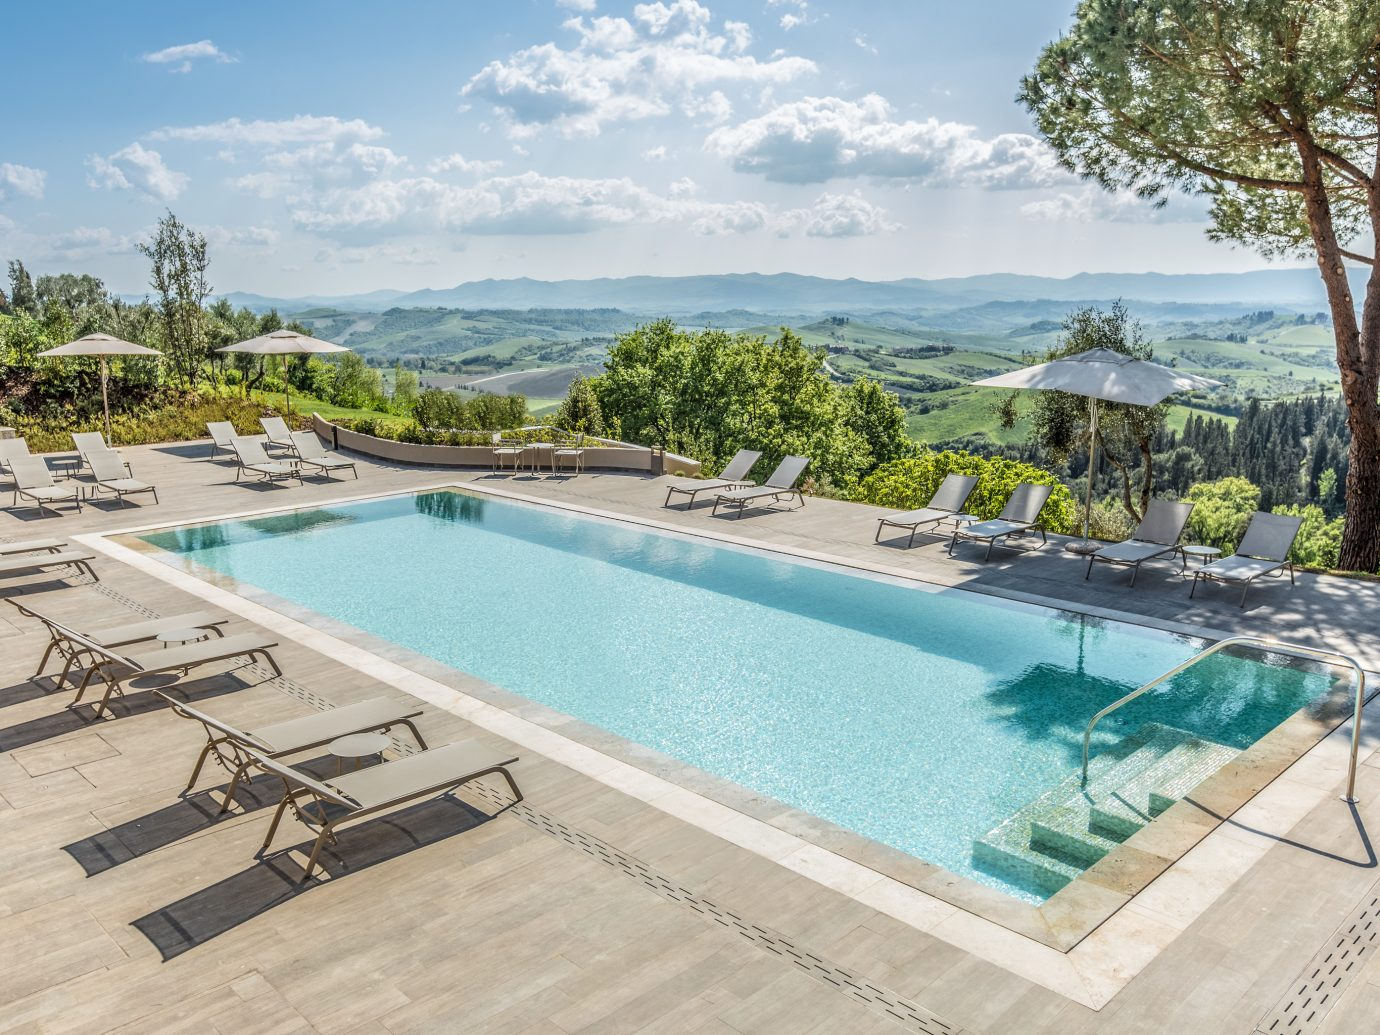 Pool at Hotel Il Castelfalfi in Tuscany